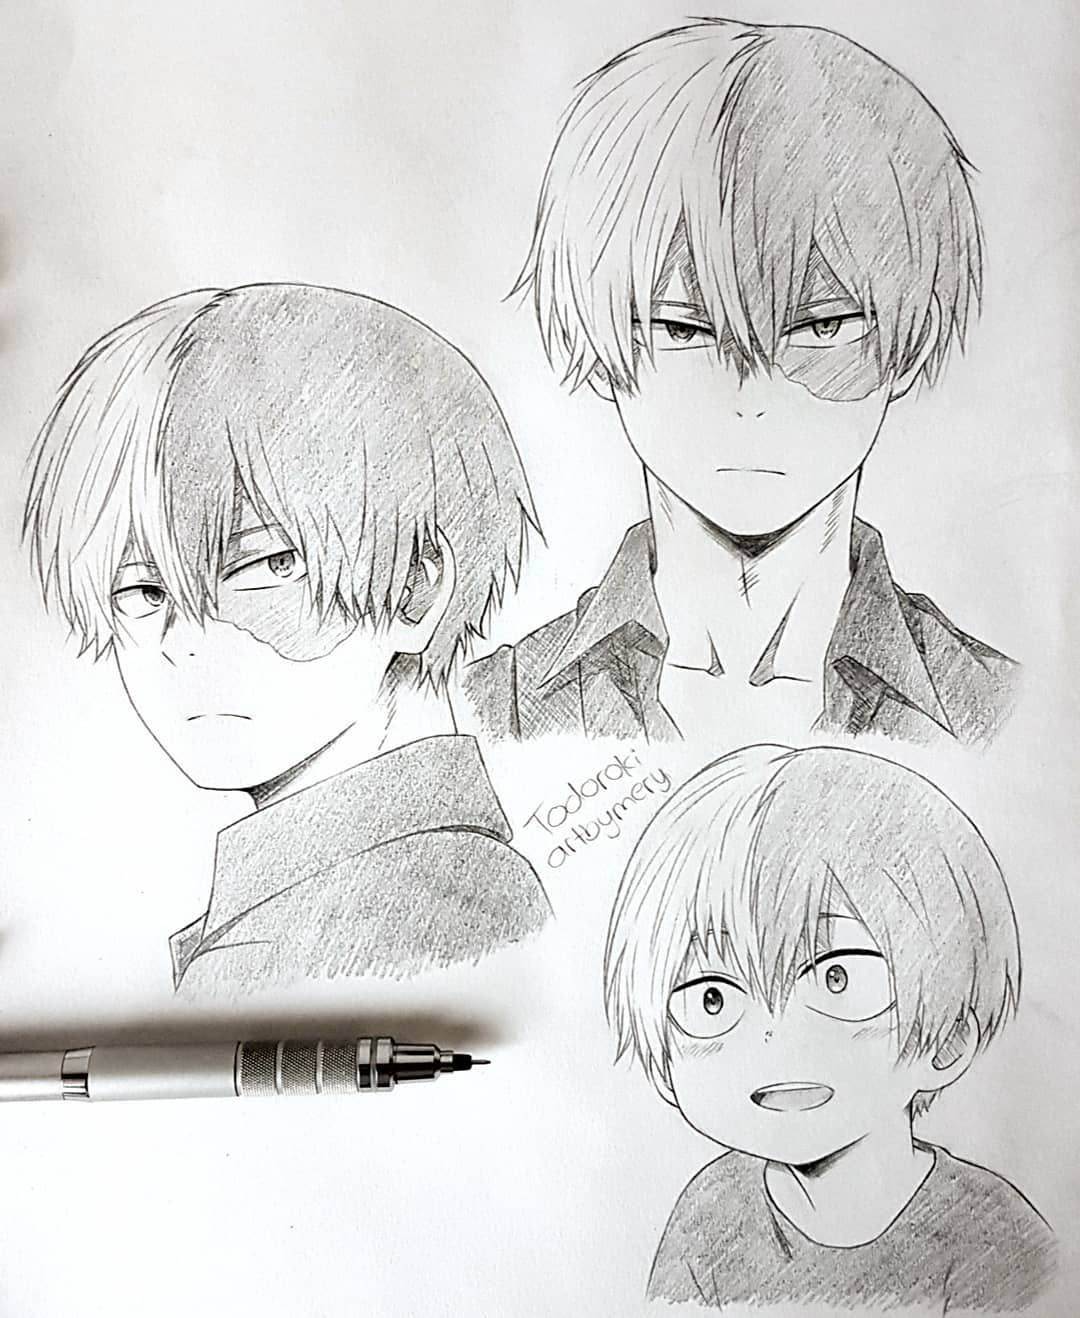 Todoroki Drawing Cute : todoroki, drawing, Todoroki, Sketches, Anime, Fanart, Drawing,, Character, Drawings, Tutorials